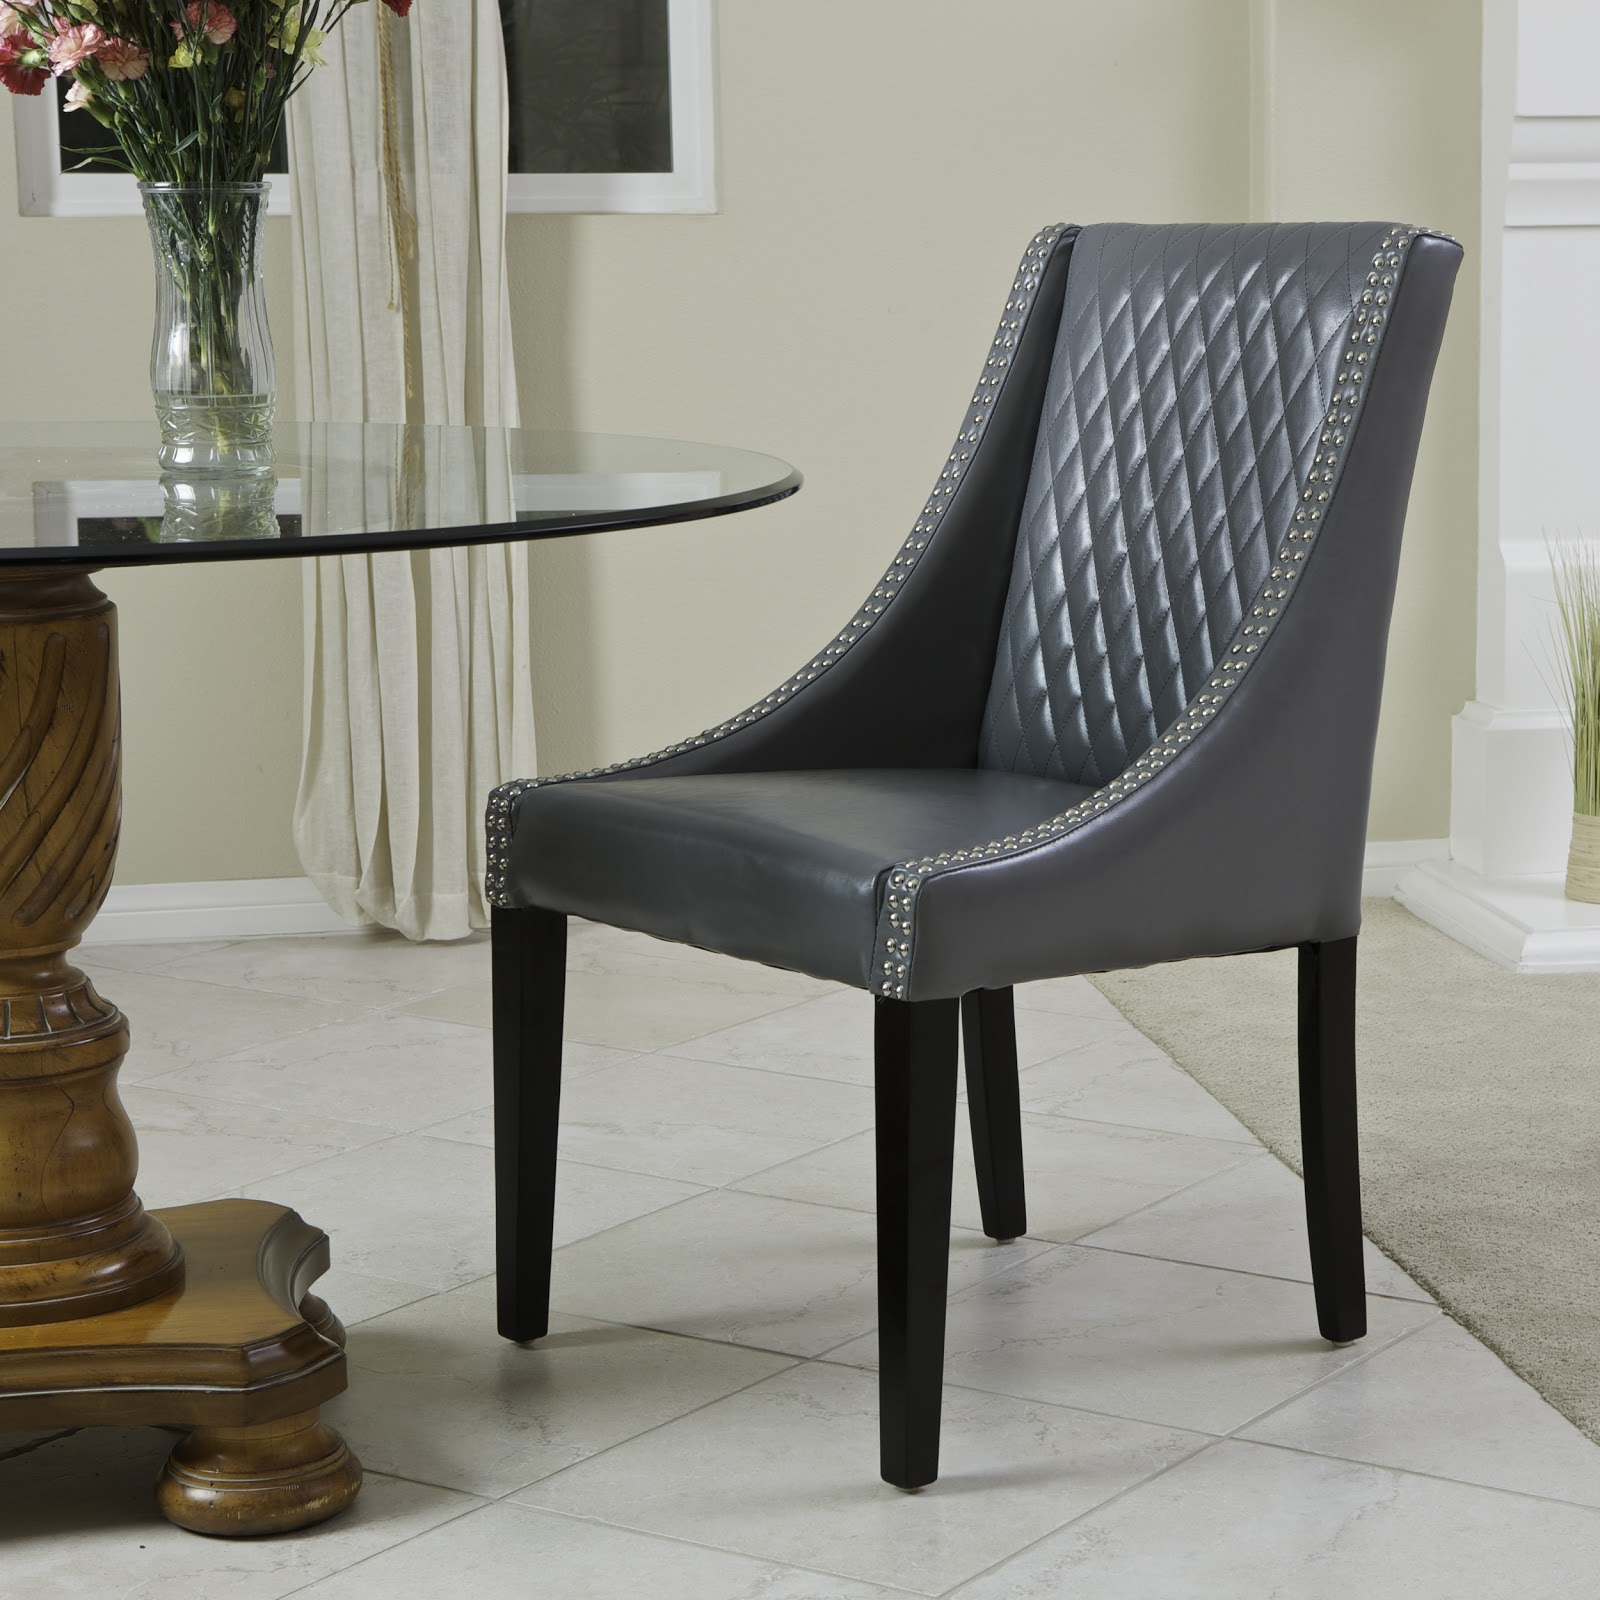 Quilted Swivel Chair Dining Set Charm Them At Hello Trend Alert Diamond Pattern